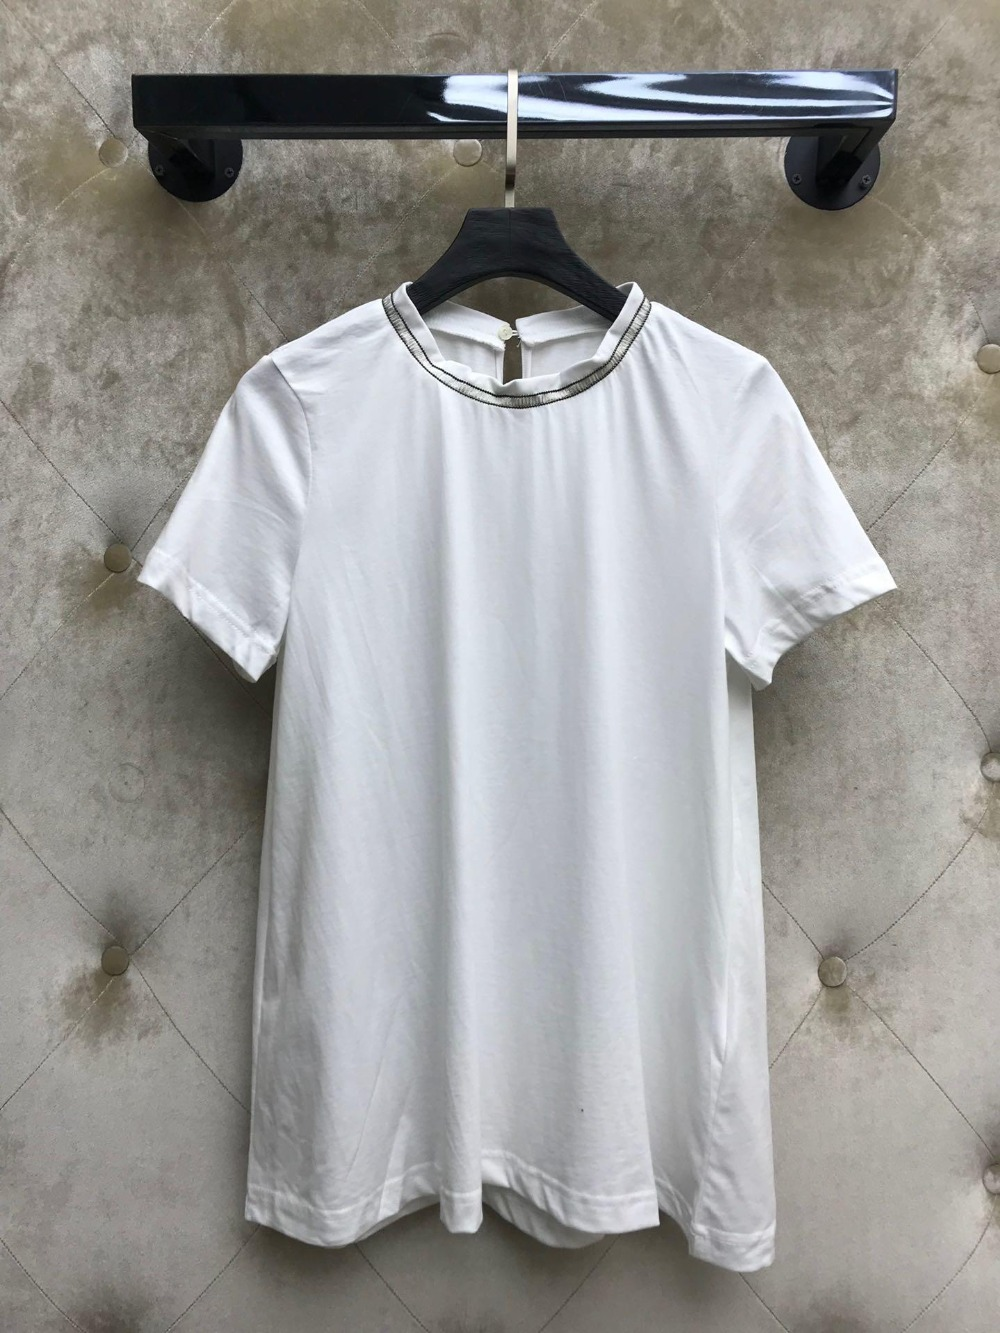 2019 new ladies fashion solid color white short sleeved beaded female T shirt 0401